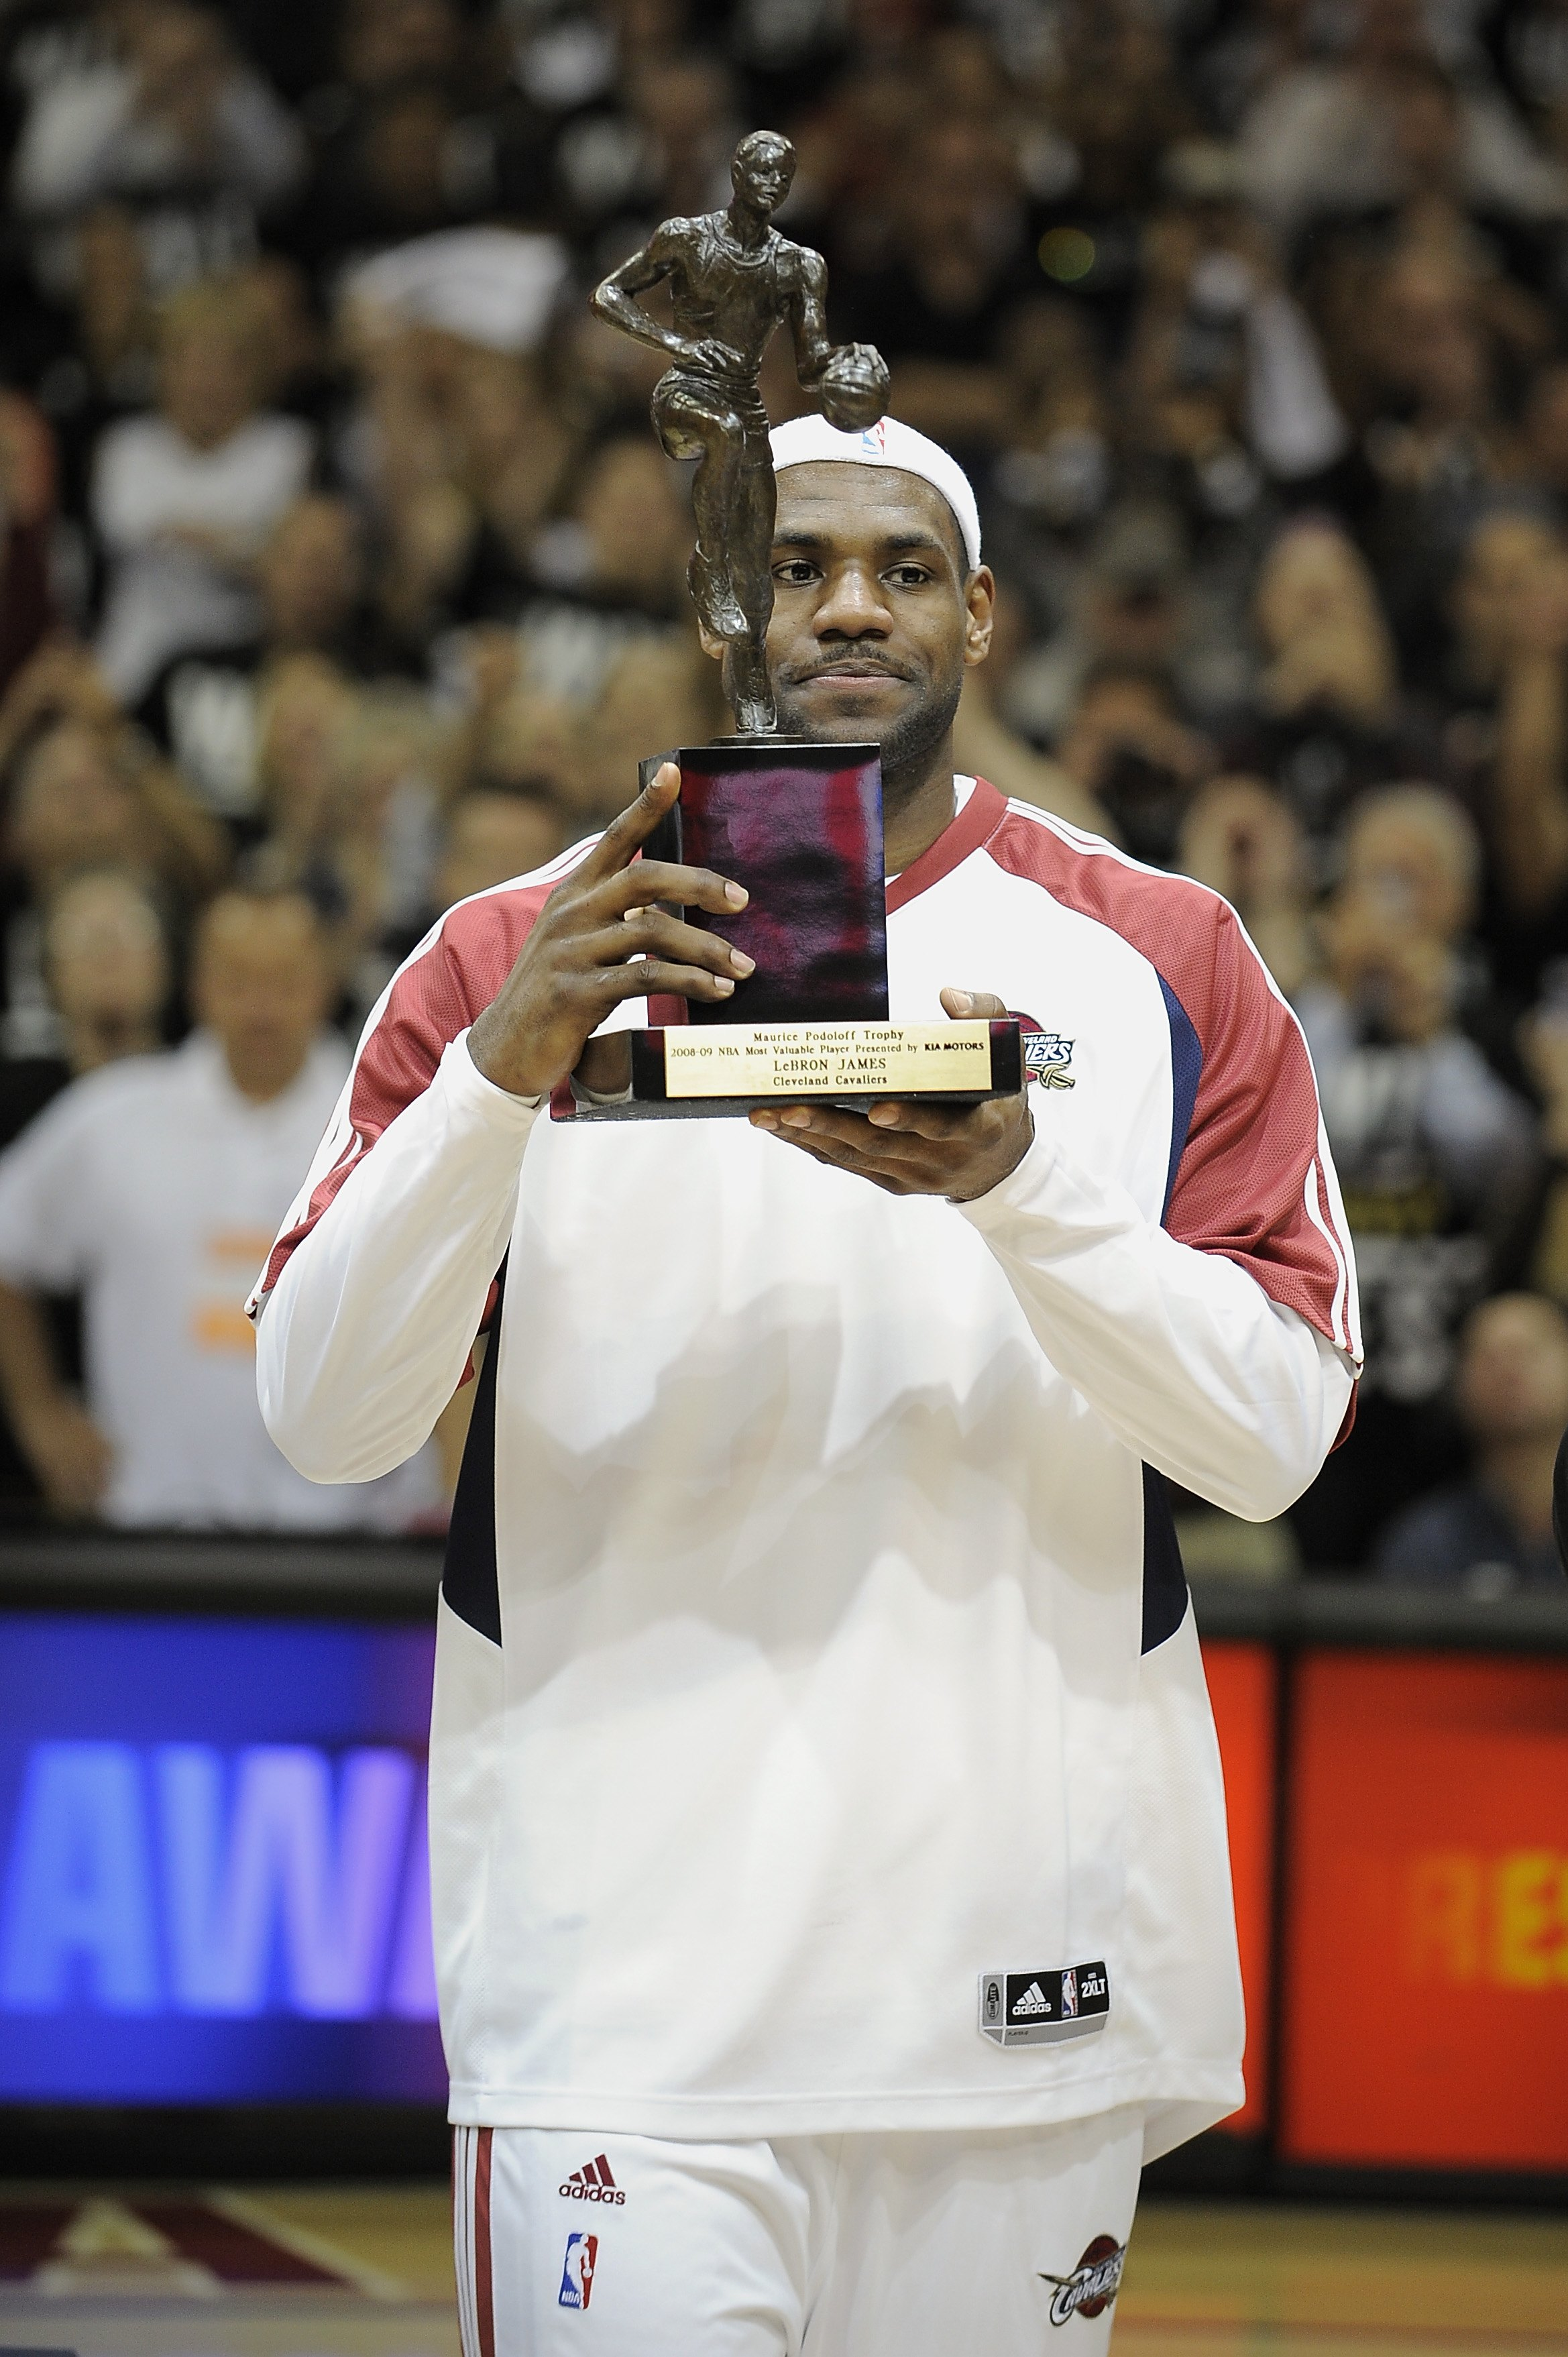 CLEVELAND - MAY 5:  LeBron James #23 of the Cleveland Cavaliers receives the 2008-2009 MVP Trophy prior to the start of Game One of the Eastern Conference Semifinals against the Atlanta Hawks during the 2009 NBA Playoffs at Quicken Loans Arena on May 5, 2